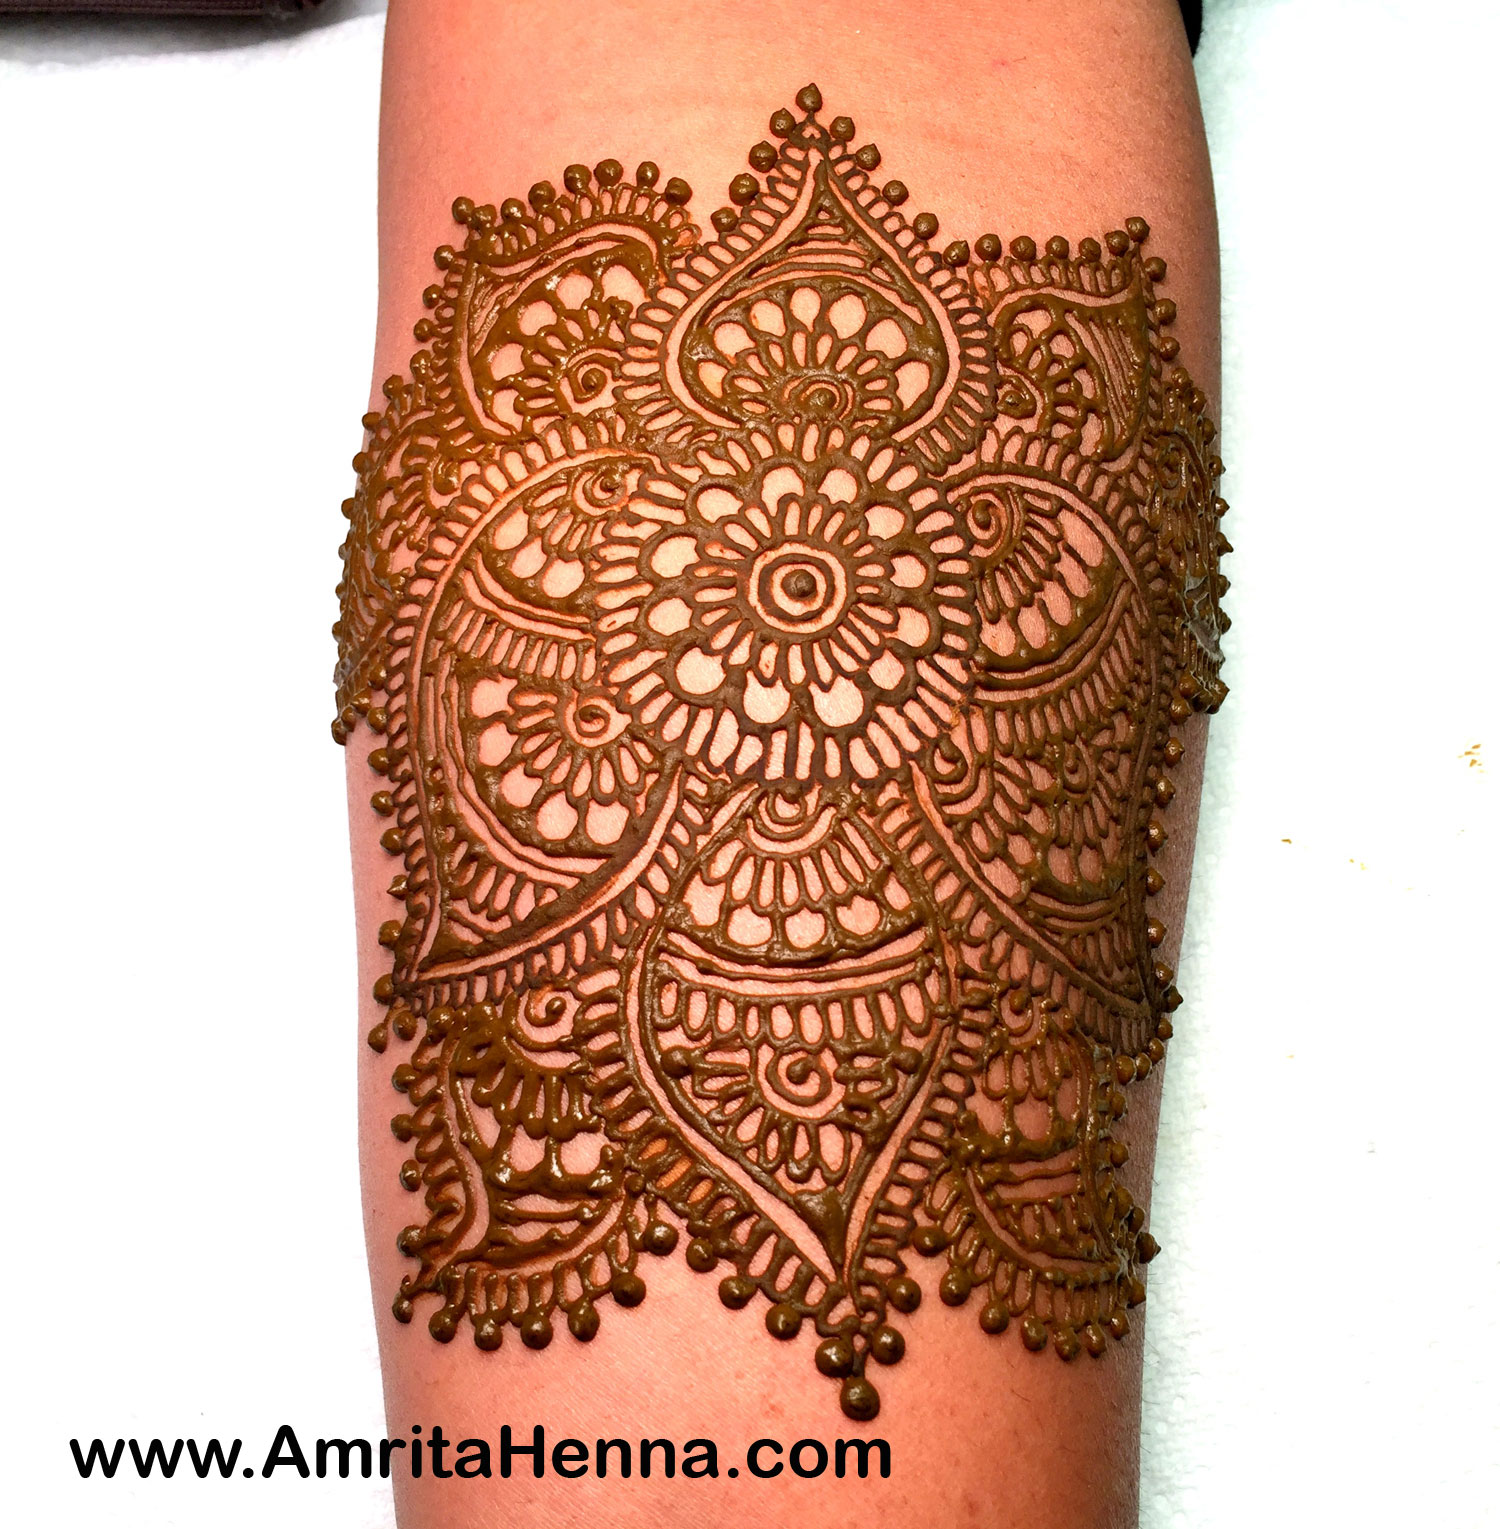 Lotus Henna Designs - Top 5 Henna Lotus Designs - Best 5 Lotus Design Mehendi Pictures you cant miss - 5 Stunning Lotus Mehndi Designs for your Wedding - 5 Amazing Lotus Flower Henna Designs - 5 Must Try Lotus Mehandi Henna Designs for you - Cool Lotus Henna Designs for your Best Friend's Wedding - Latest Henna Tattoo Designs Lotus Flower - 5 Most Popular Wedding Season Lotus Flower Henna Mhendi Designs